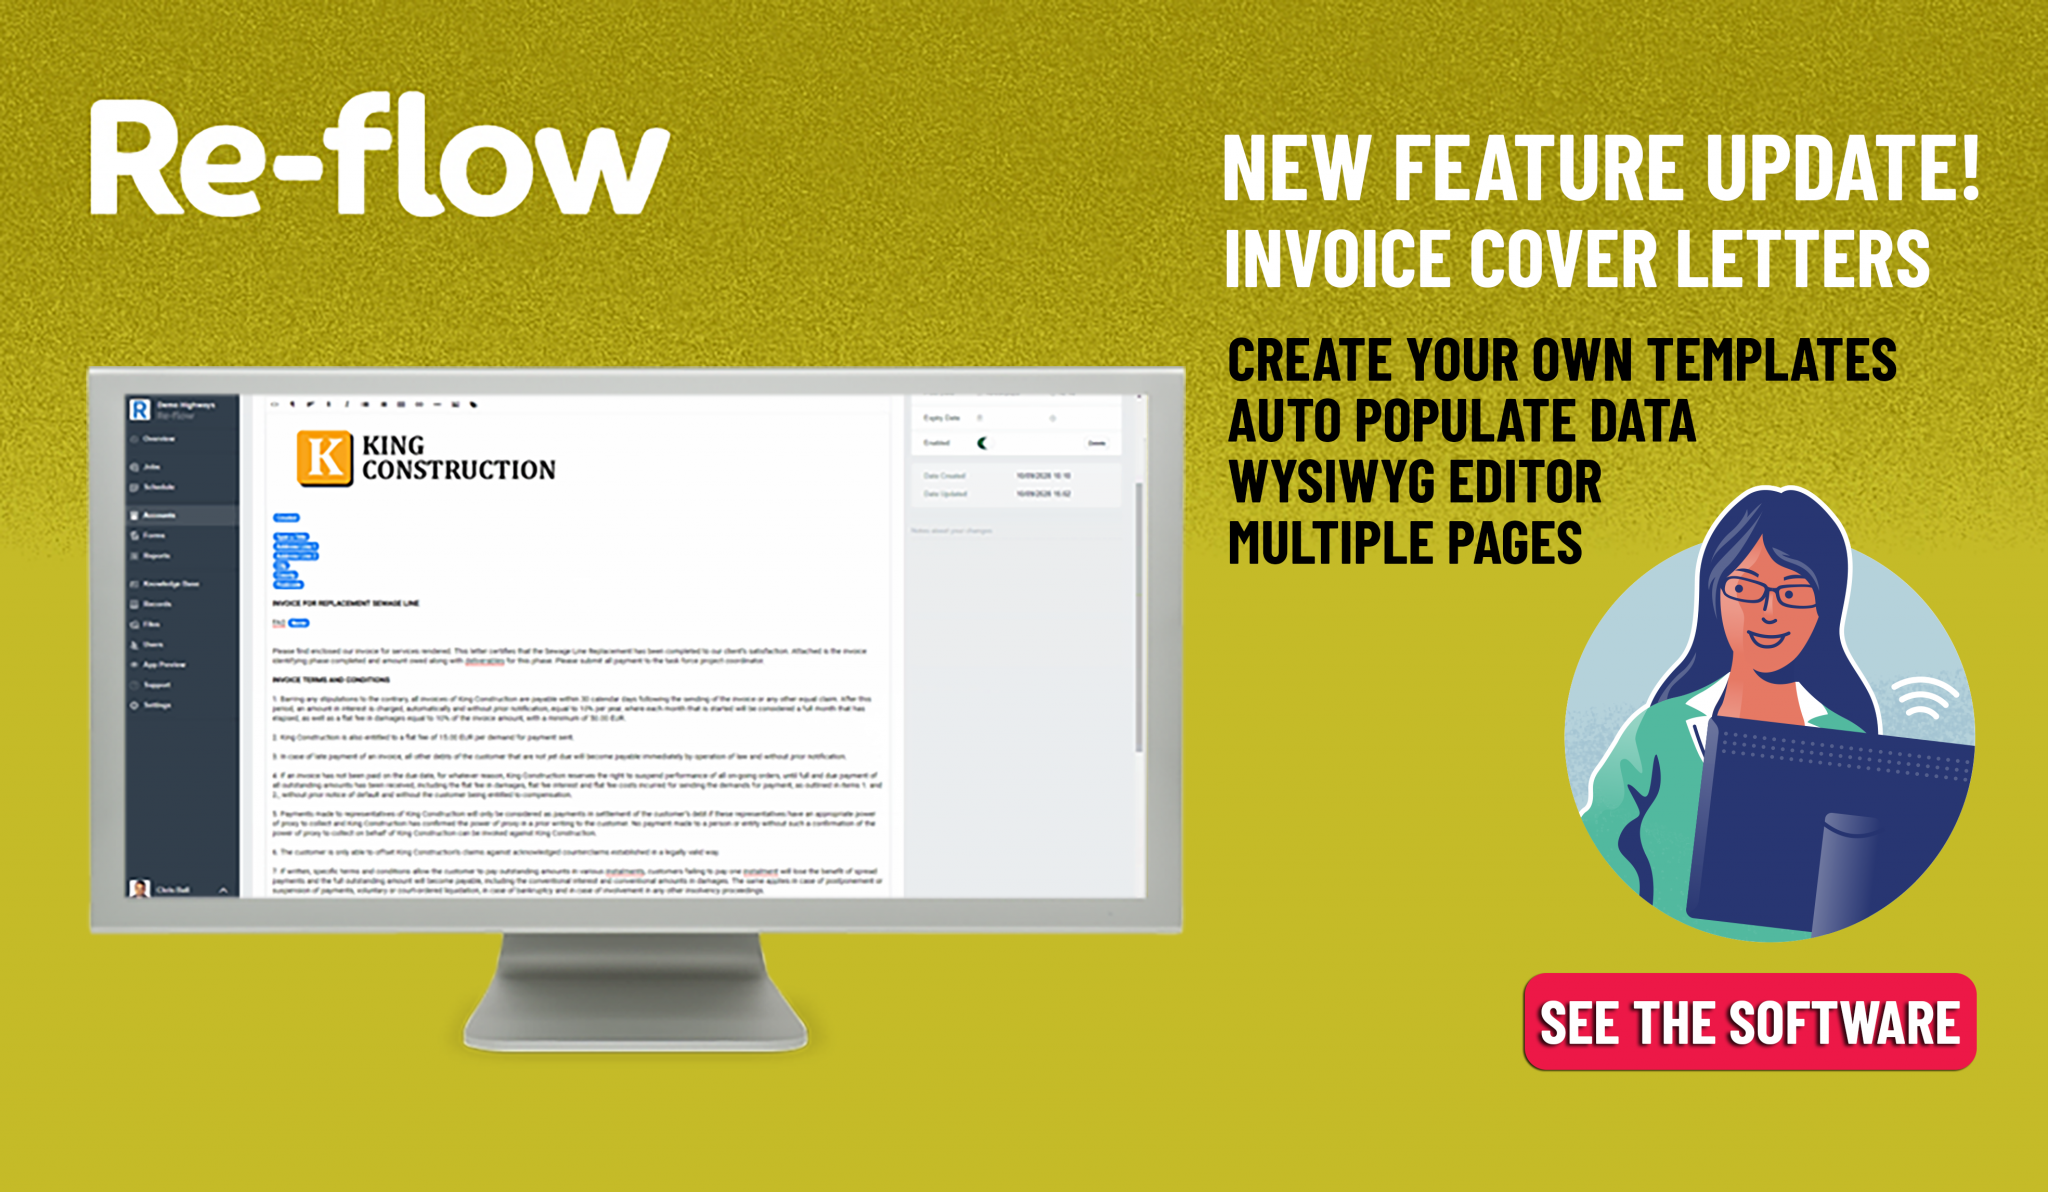 New Feature Update- Invoice Cover Letters